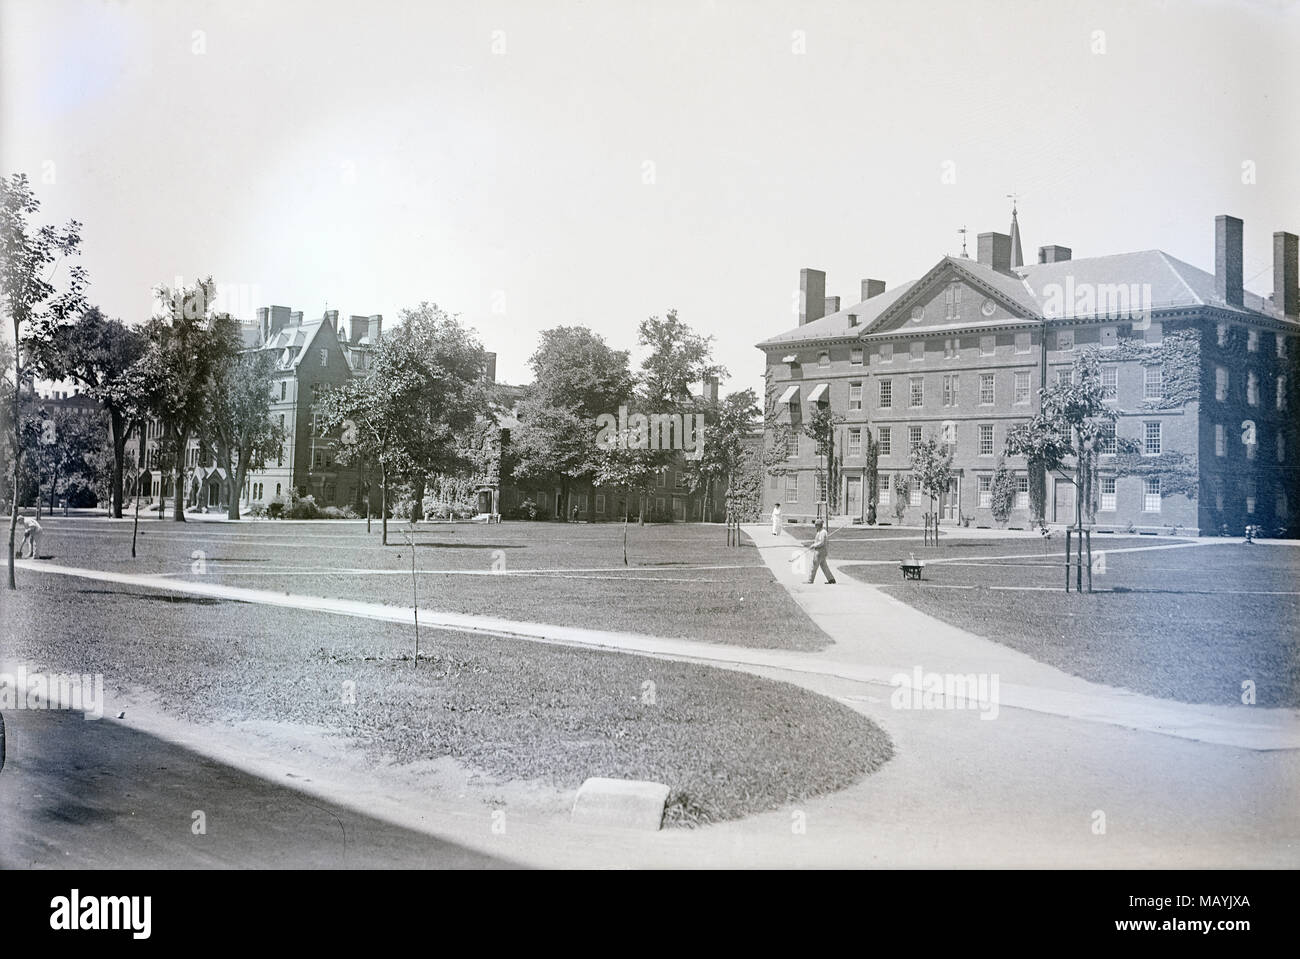 Antique c1910 photograph, Harvard Yard with buildings Matthews Hall (l), Massachusetts Hall (c) and Hollis Hall (r) in Cambridge, Massachusetts. SOURCE: ORIGINAL GLASS NEGATIVE - Stock Image